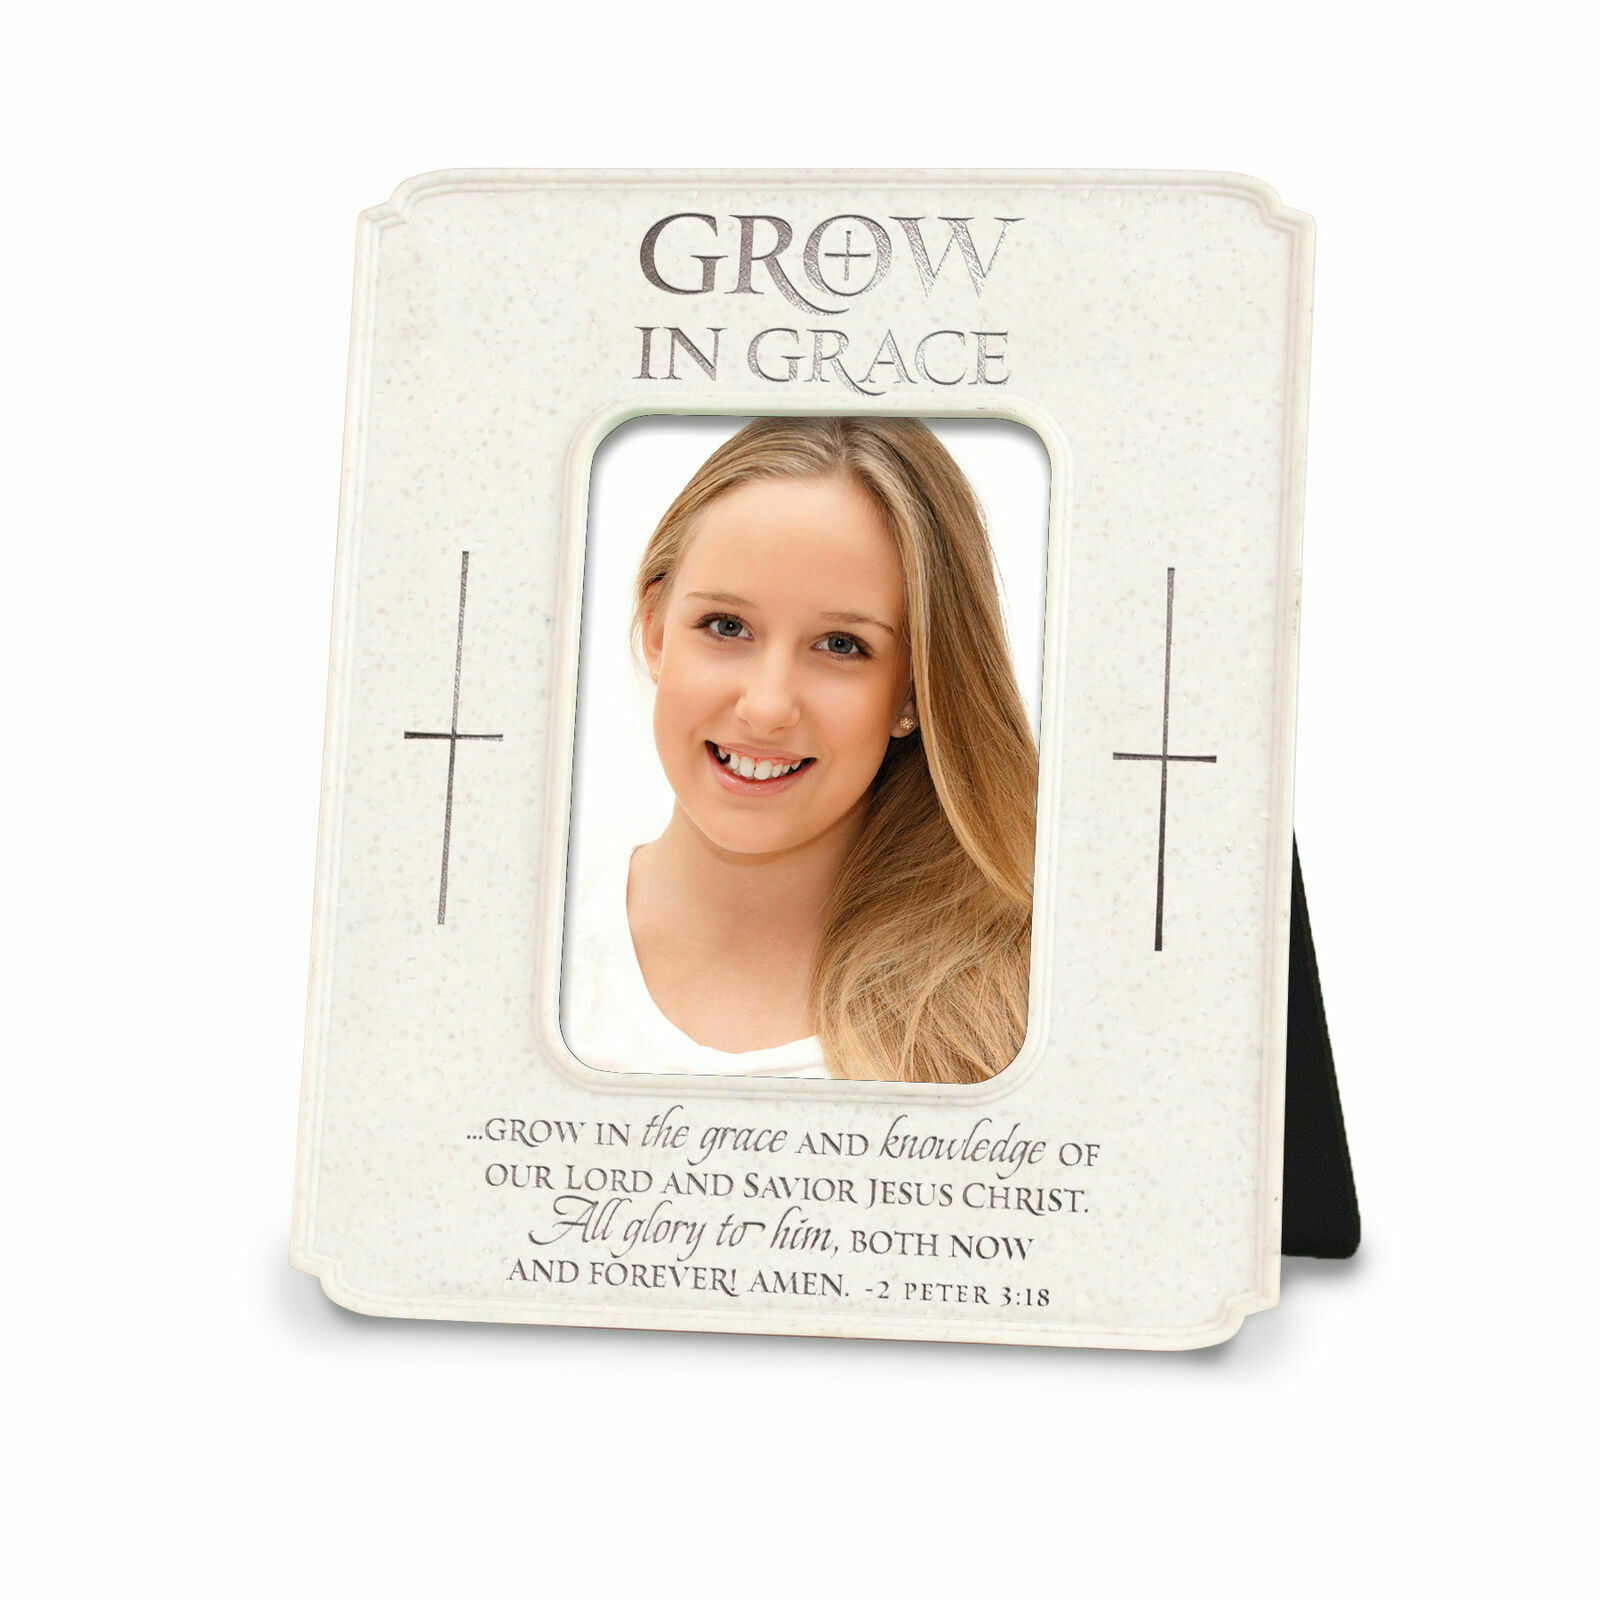 Confirmation Frame By Lighthouse Products 17264 - Cast Stone - FREE SHIPPING  - $13.99